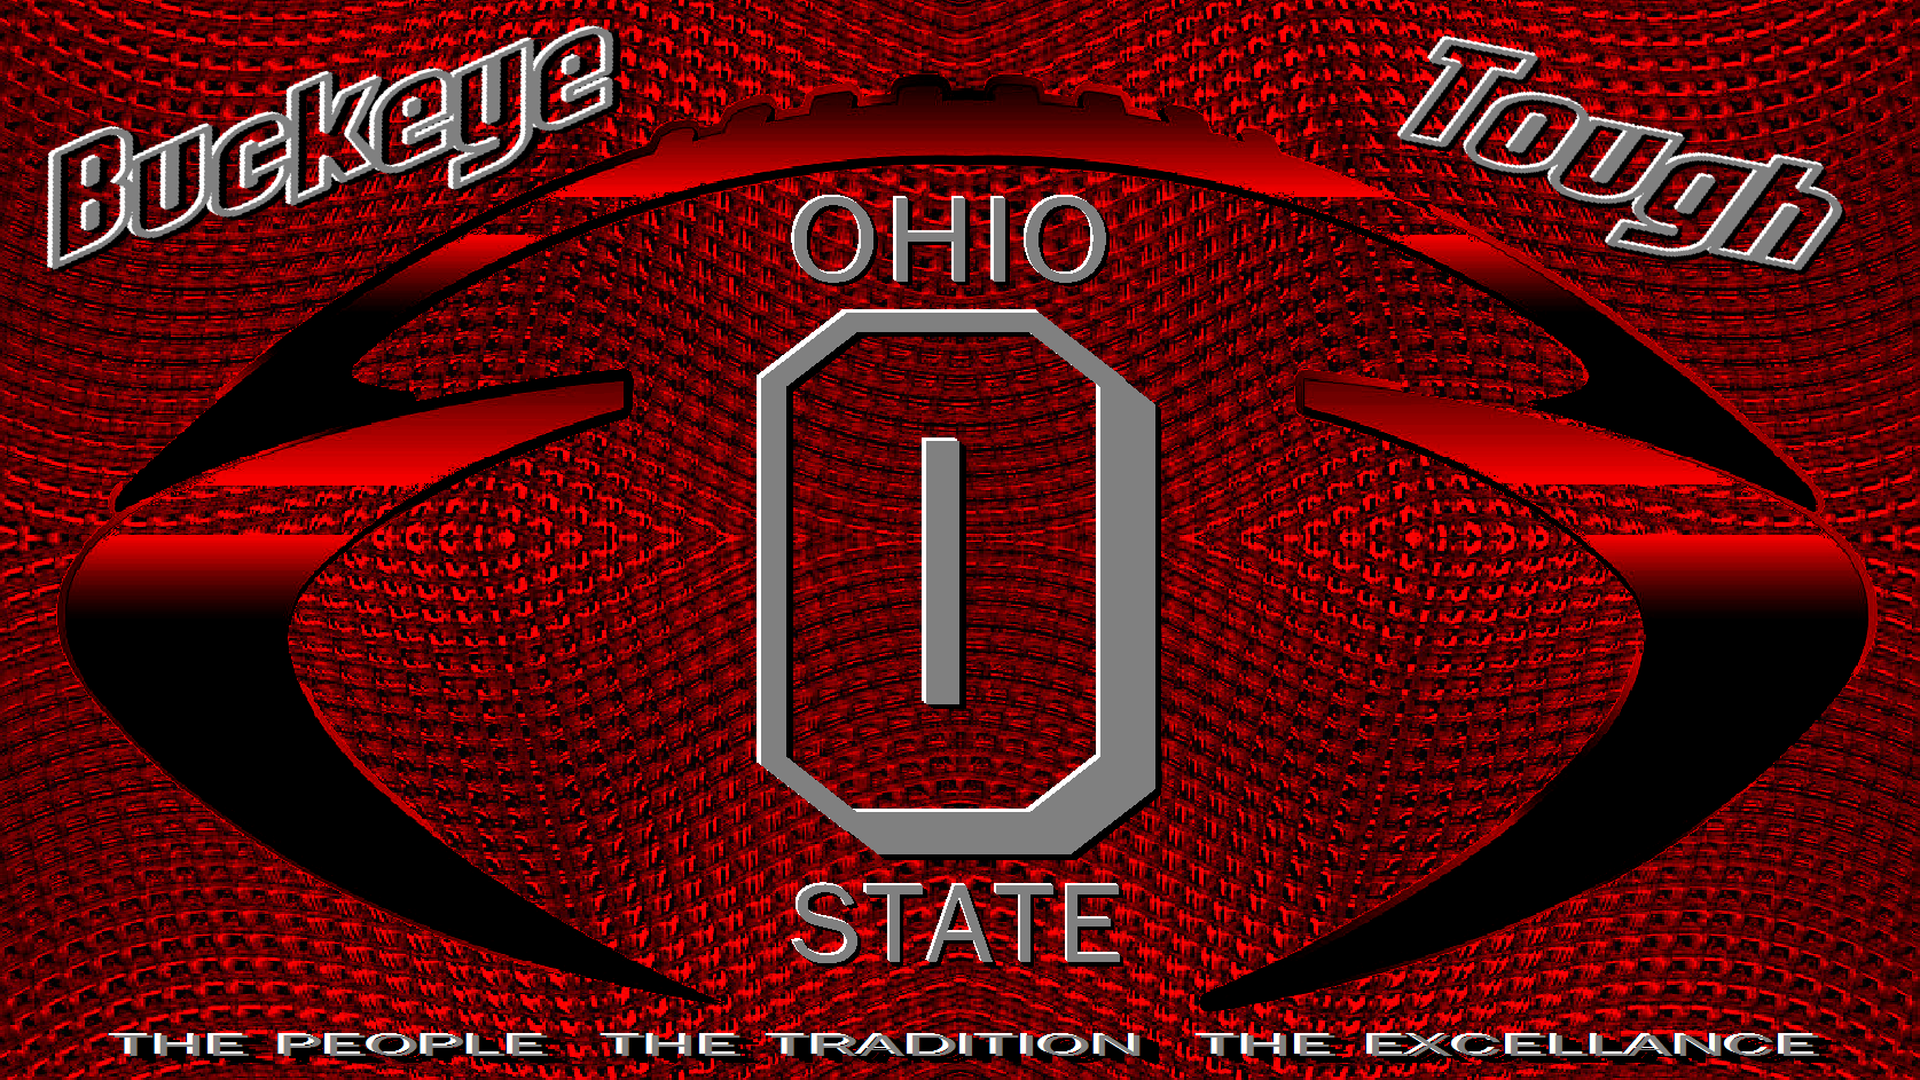 Ohio State Football Wallpaper Images & Pictures - Becuo